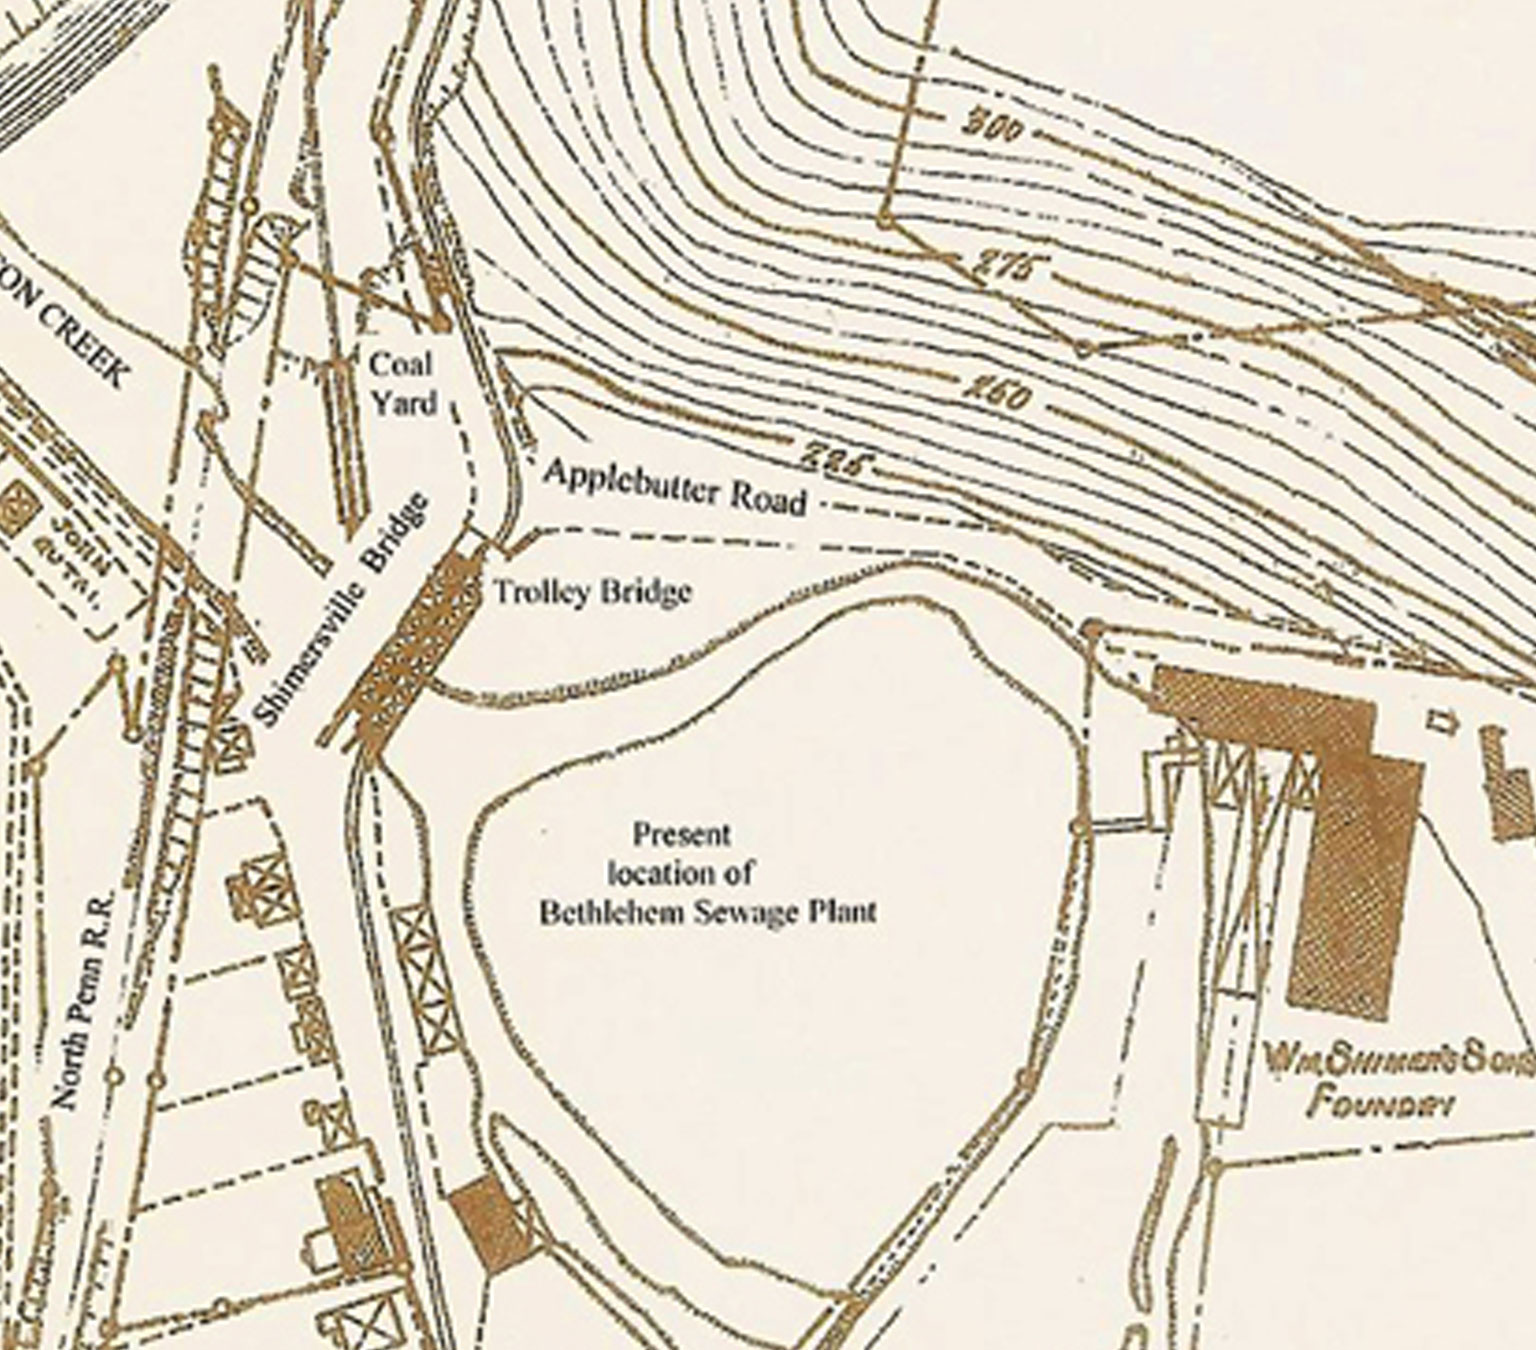 This map shows what Shimersville was like in 1900 but also gives you some current landmarks such as the sewage treatment plant to help orient you.